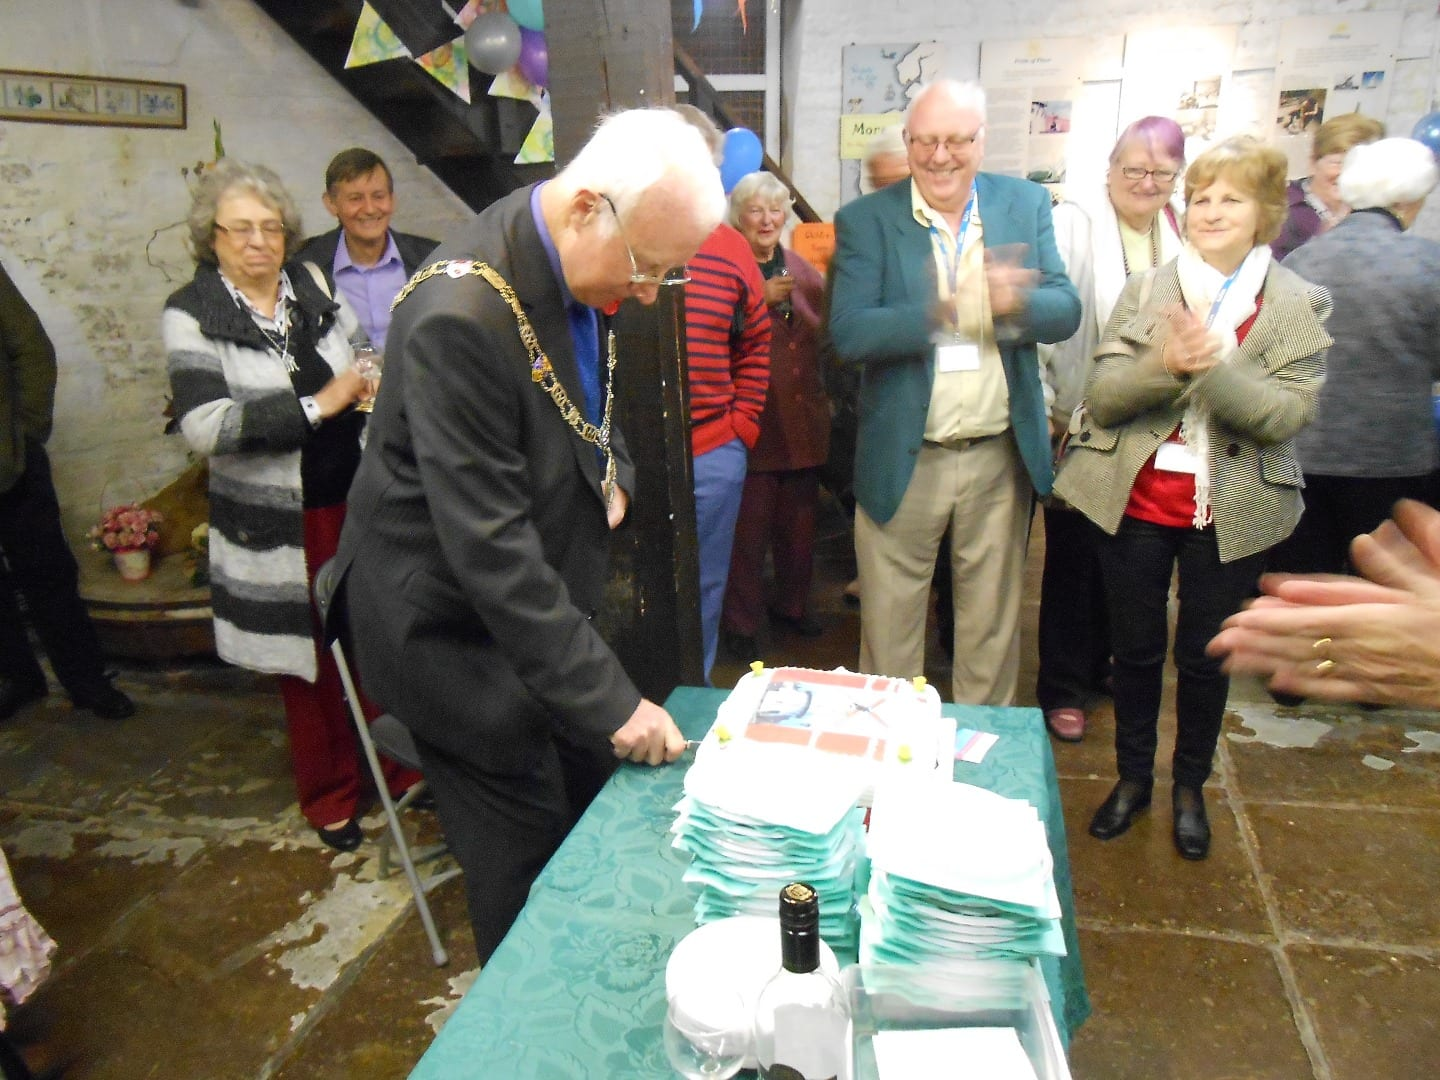 Mayor of Wyre cuts the 221st birthday cake